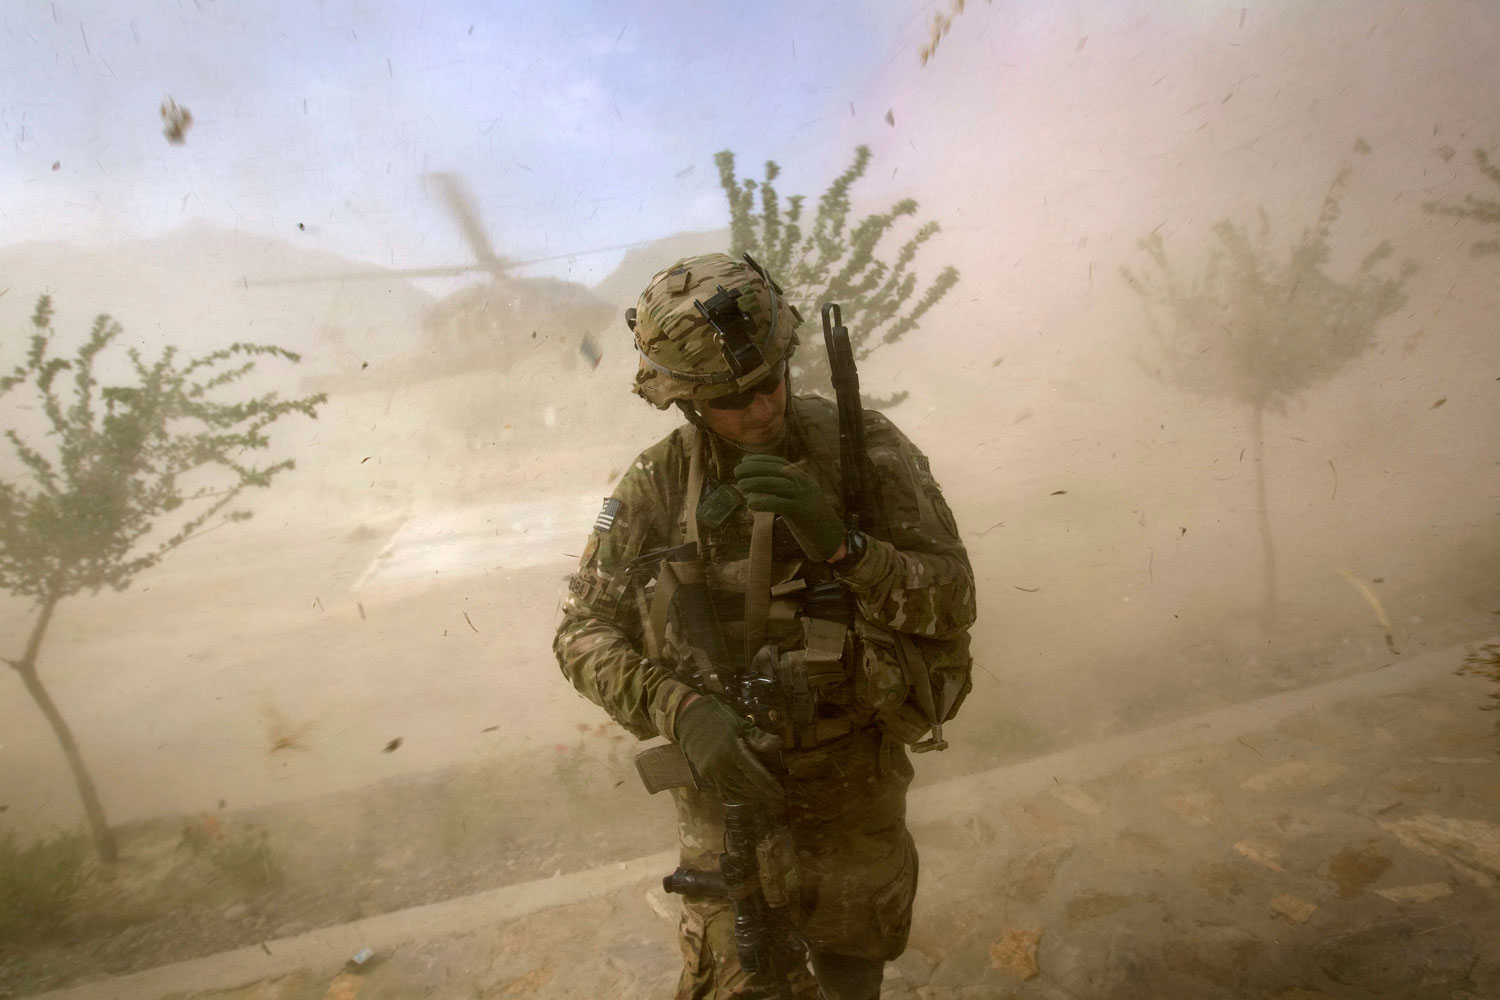 September 15, 2011. 2nd Lt. Andrew Ferrara, 23, of Torrance, Calif., with the U.S. Army's Bravo Company of the 25th Infantry Division, 3rd Brigade Combat Team, 2nd Battalion 27th Infantry Regiment, based in Schofield Barracks, Hawaii, turns from the rotor wash of a landing Blackhawk helicopter during a mission for a key leader engagement at the Shigal district center in Kunar province, Afghanistan.